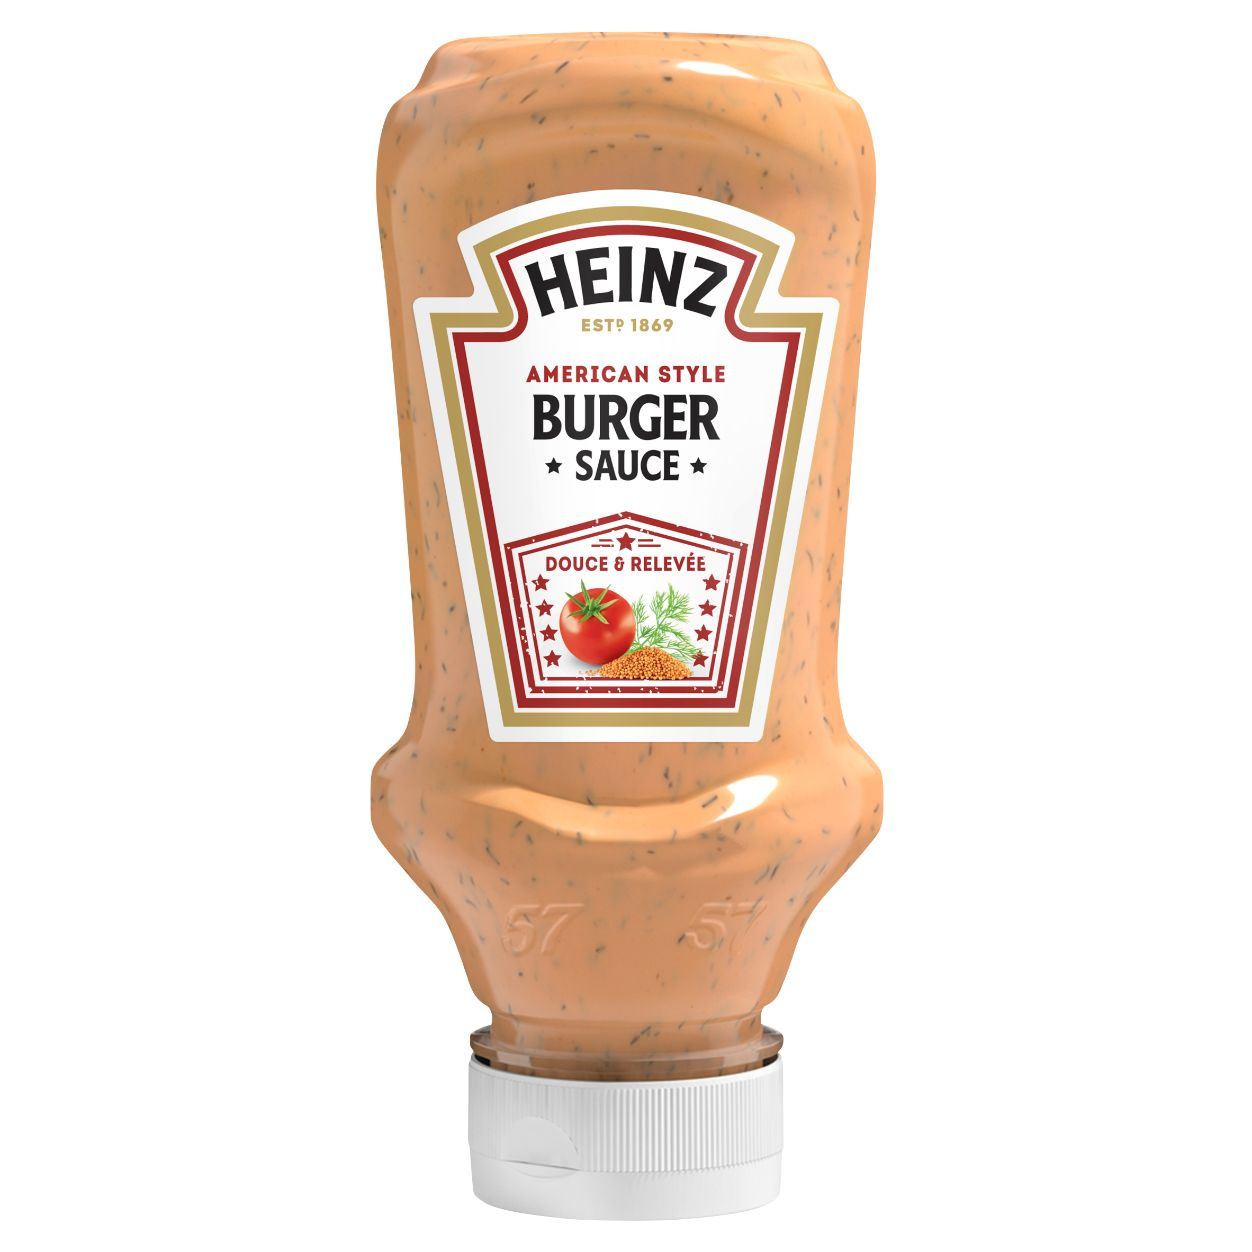 Heinz Sauce American burger 220ml Flacon Souple Top Down image